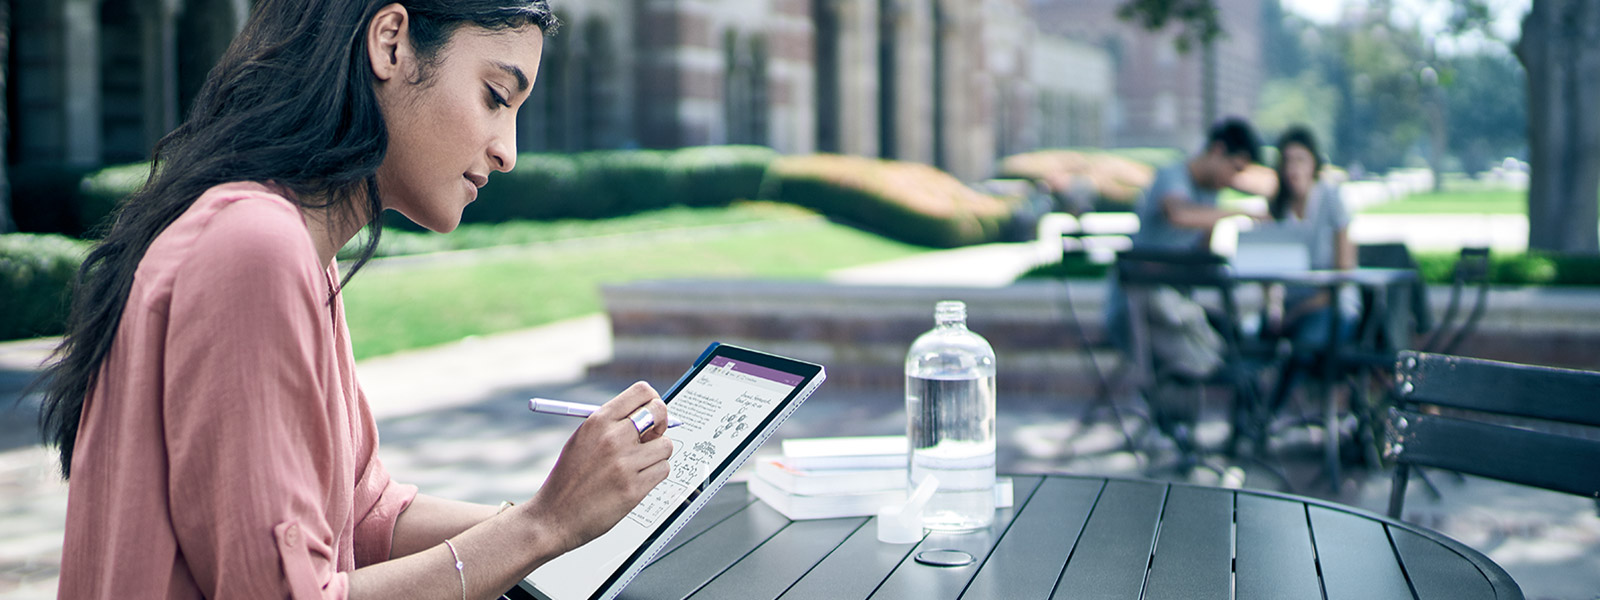 Woman sits in outdoor setting, using touchscreen of Surface Pro 4 in tablet mode.